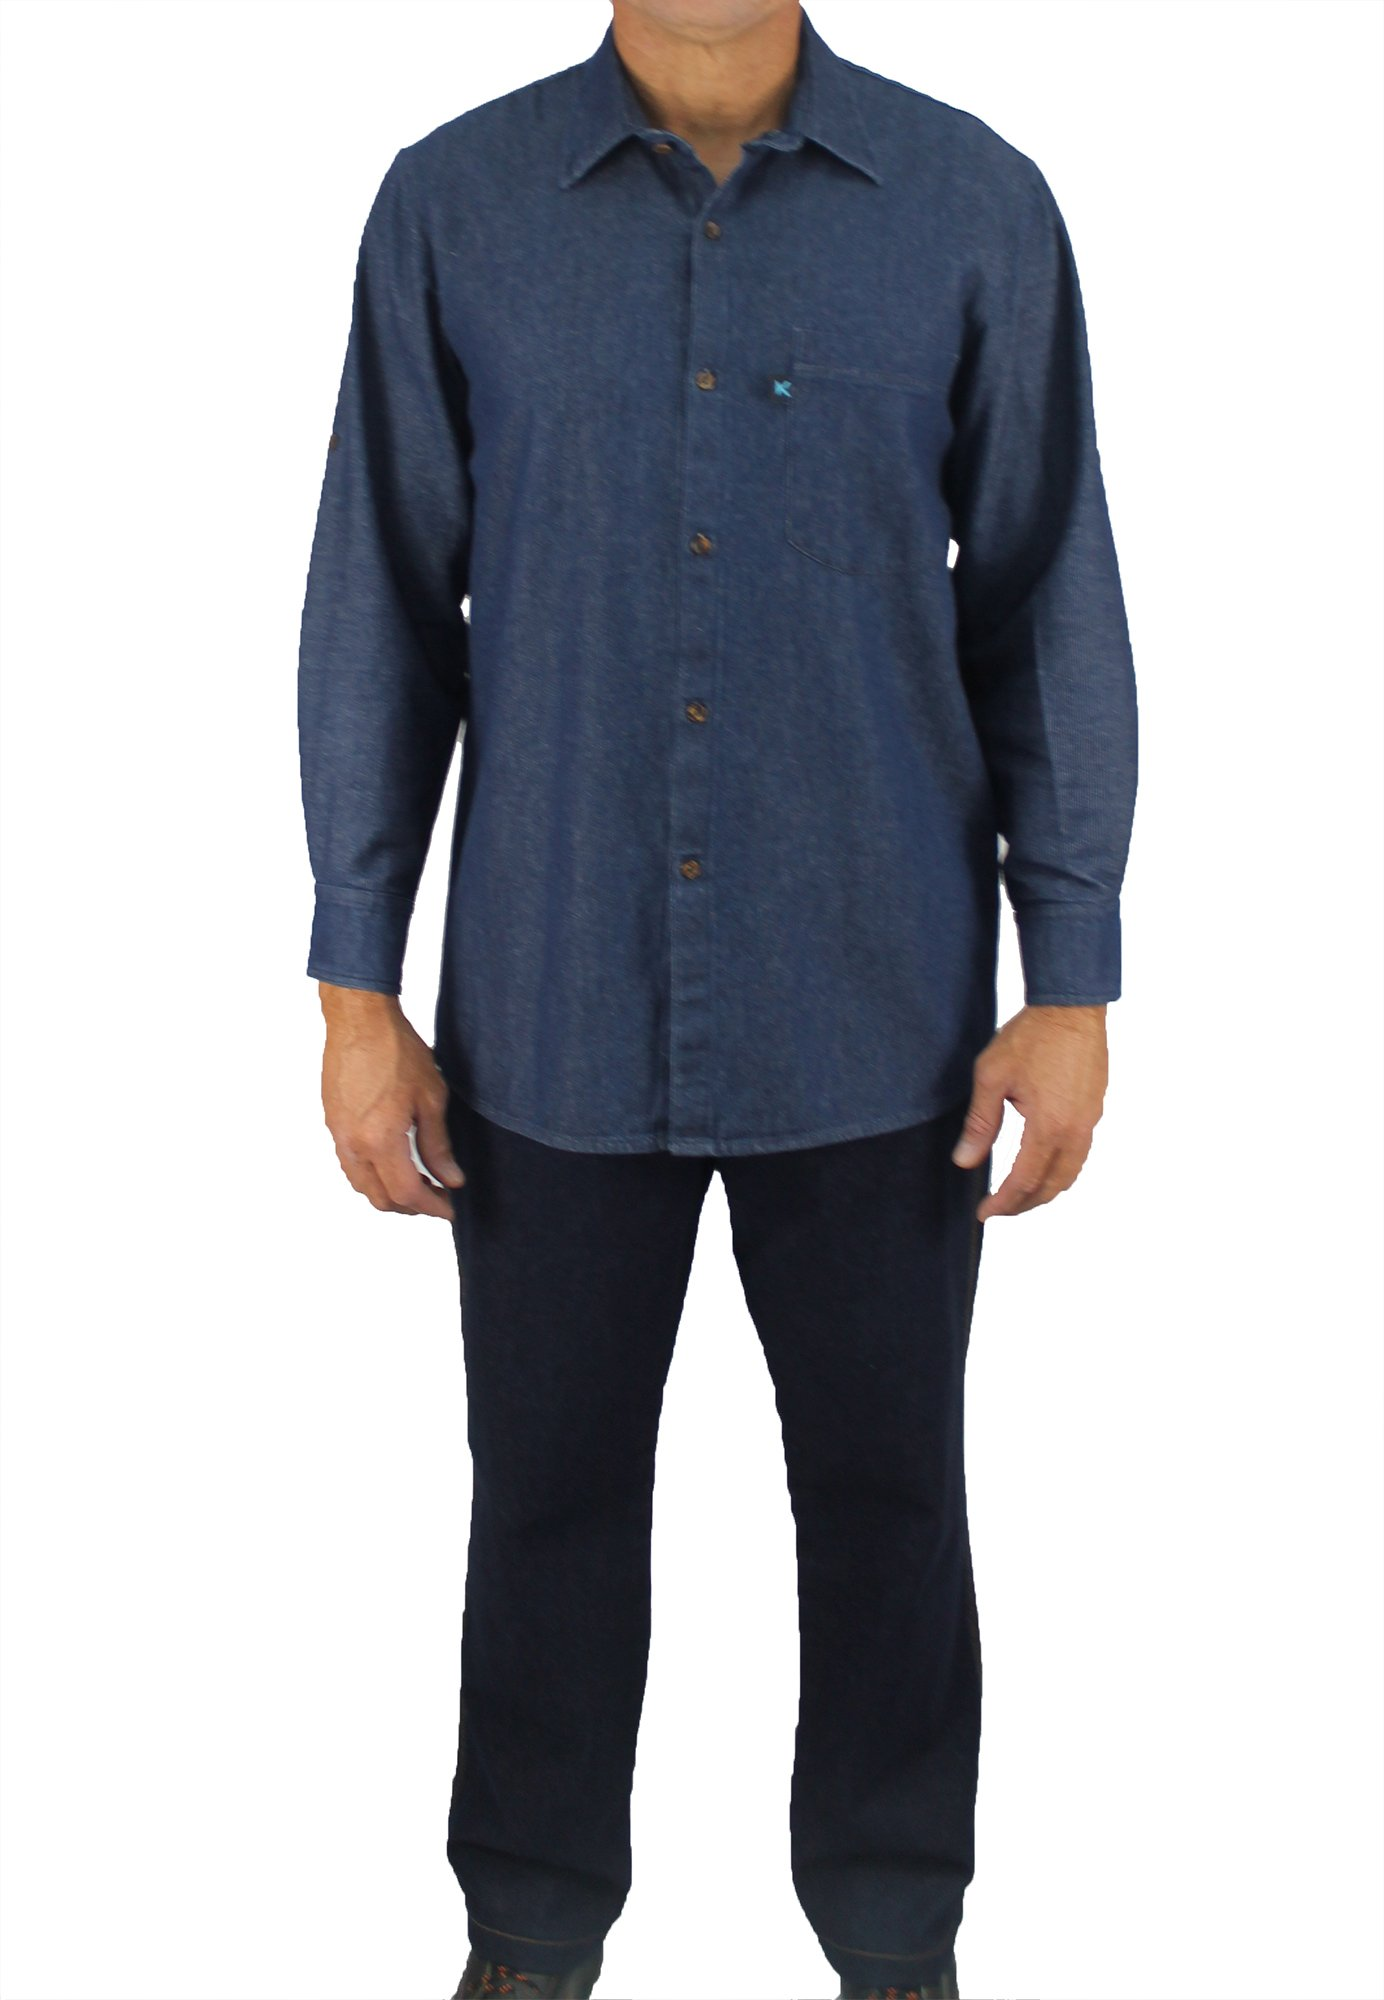 Kolossus Men's Lightweight 100% Cotton Long Sleeve Work Shirt with Pockets (Chambray, Small) by Kolossus (Image #1)